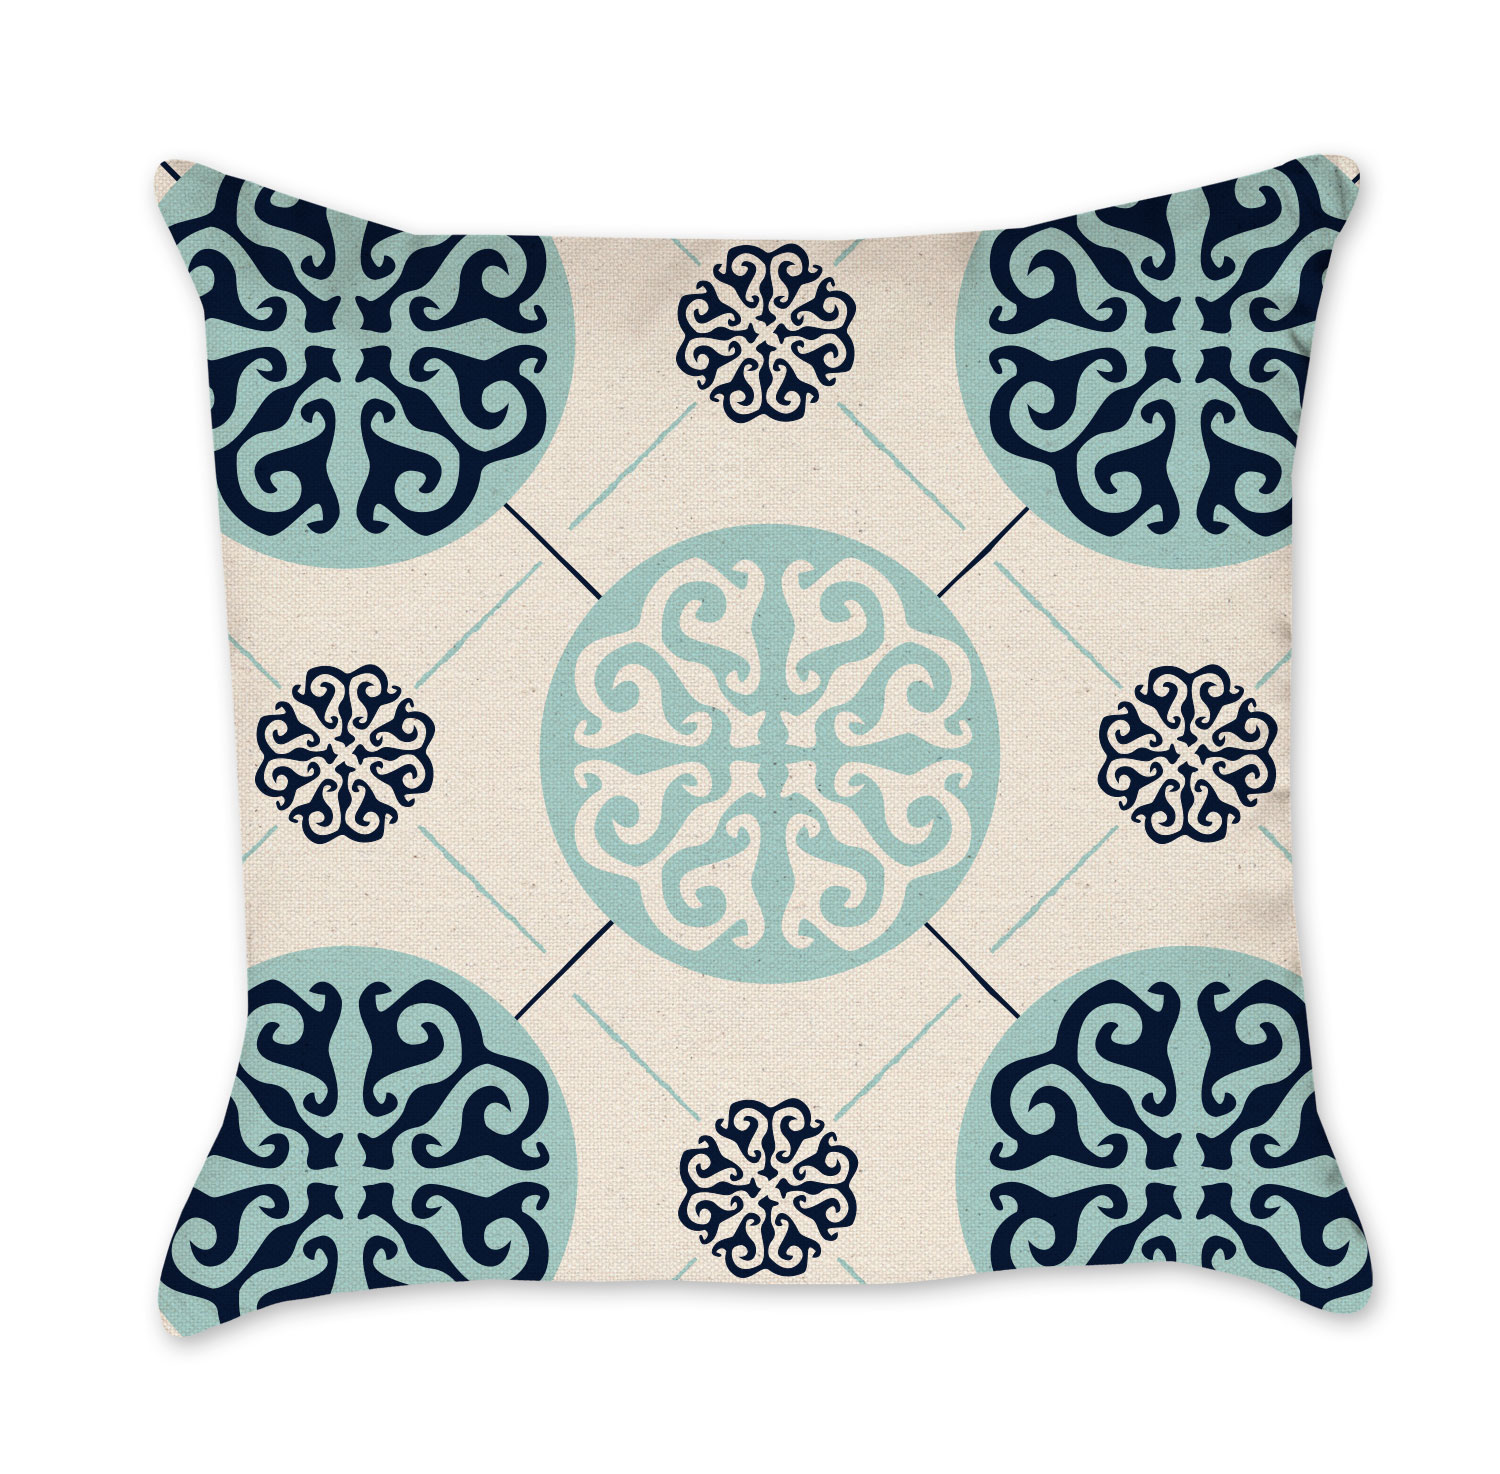 fabric living front embroidery cotton turquoise in inch insert damask solid closure concealed cushion poly coral one ravishing accessory cover side polyester size navy and room embroidered zipper percent invisible pillow pillows of throw cushions blend full design material back pattern fill